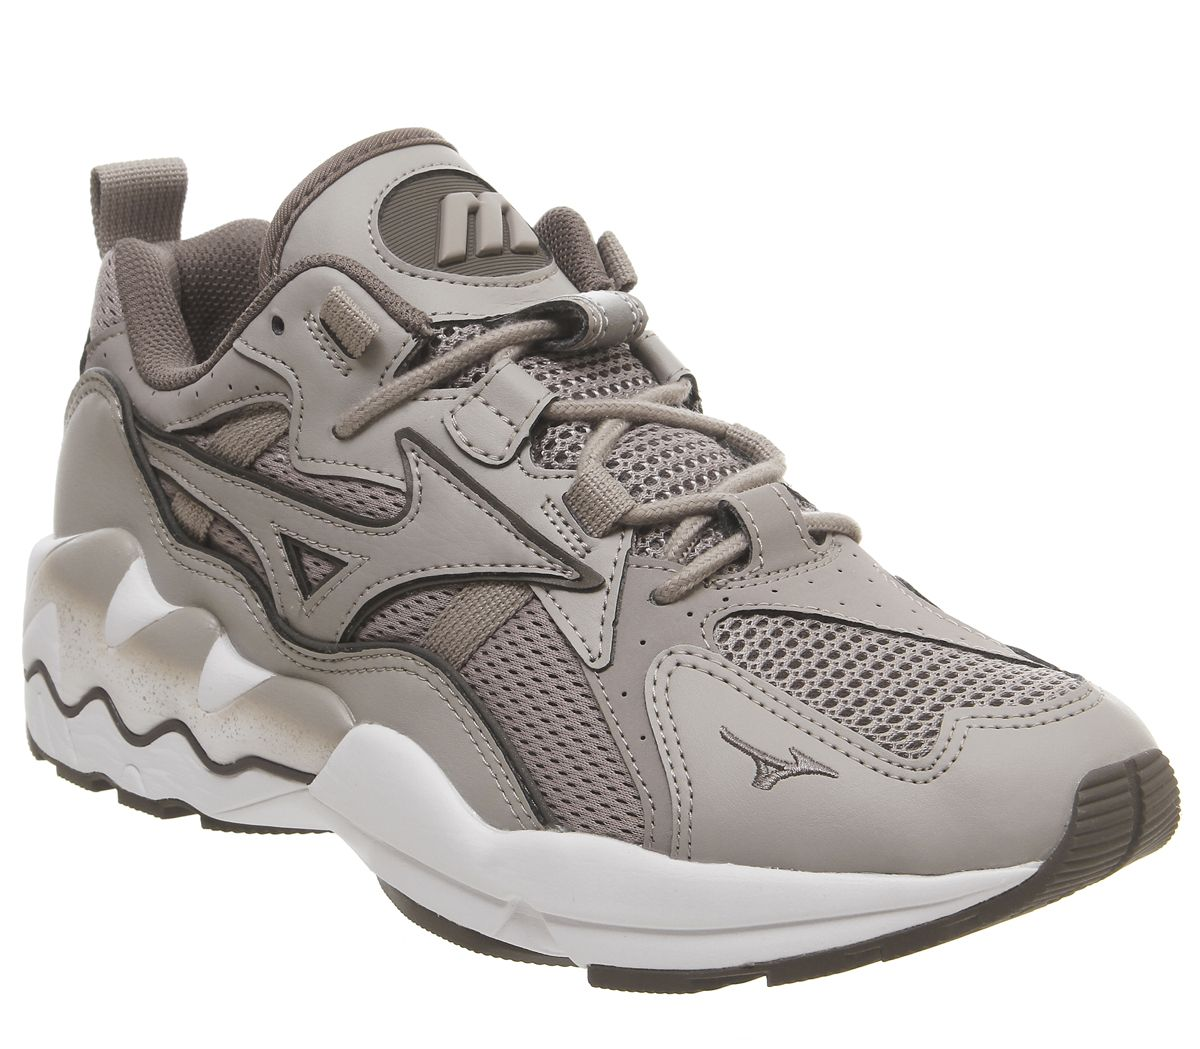 the best attitude 41d79 bcbd5 Mizuno Wave Rider Trainers Atmosphere Falcon - His trainers